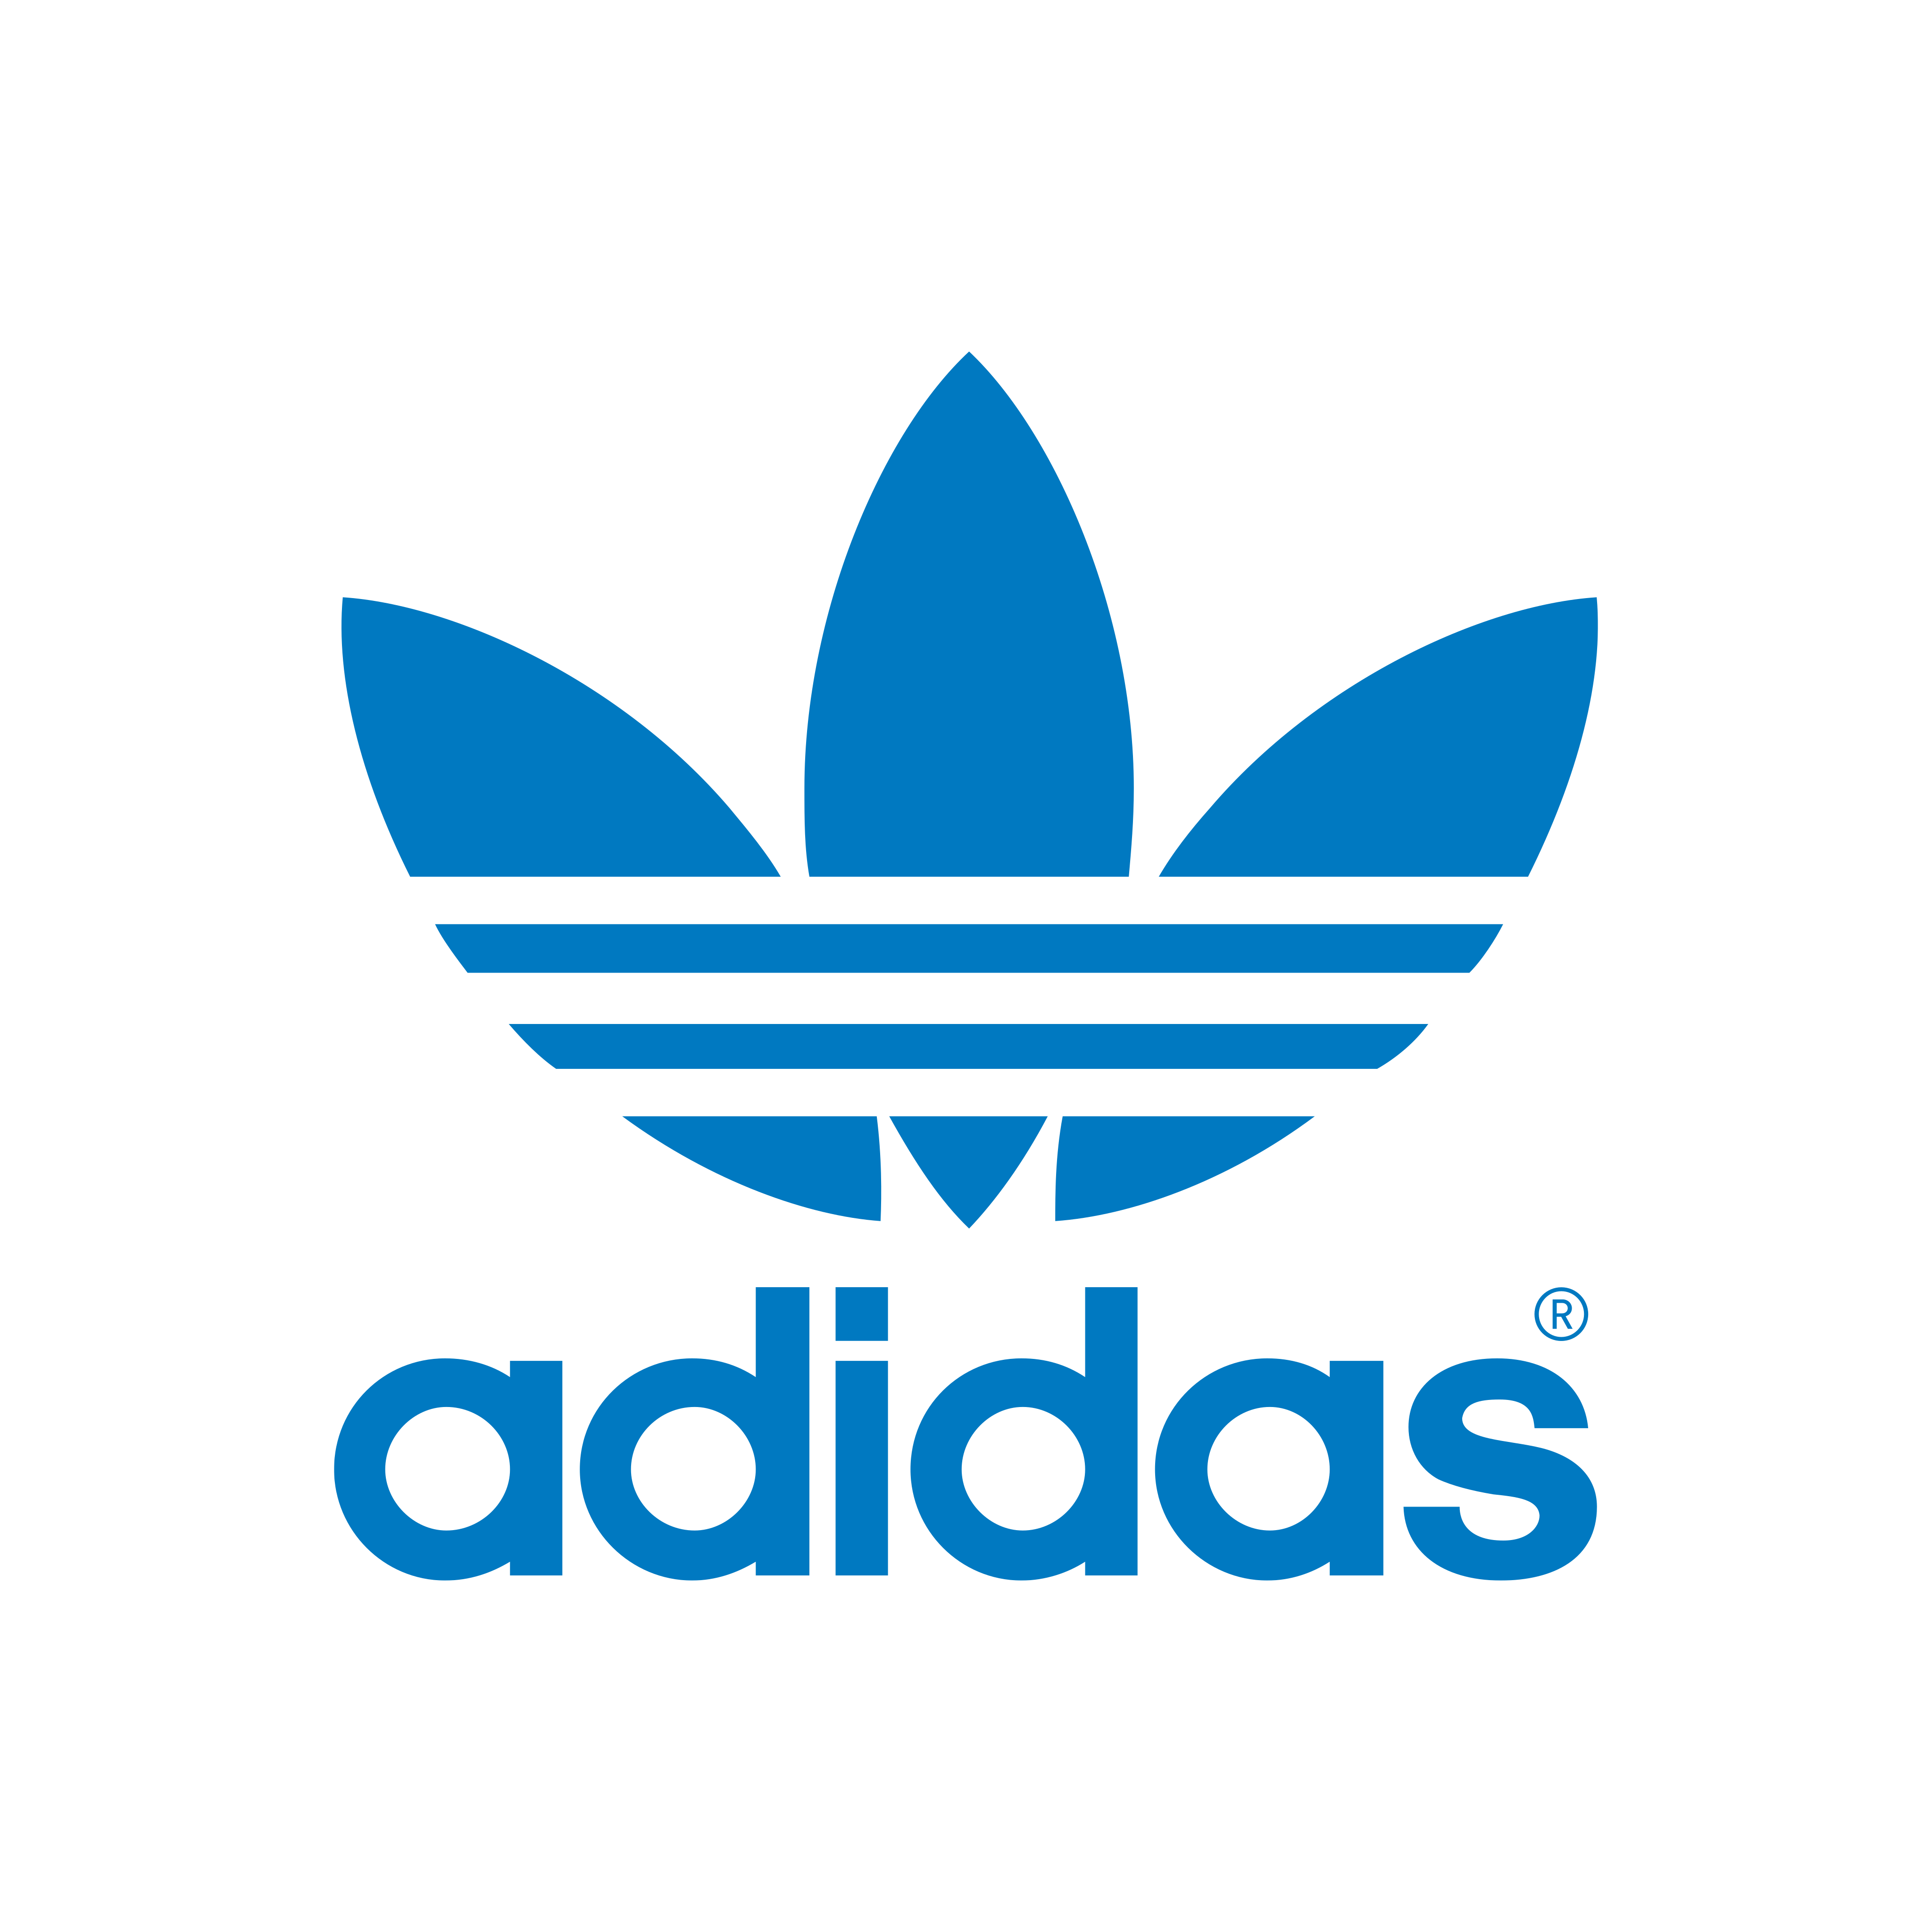 adidas originals logo 0 - Adidas Originals Logo